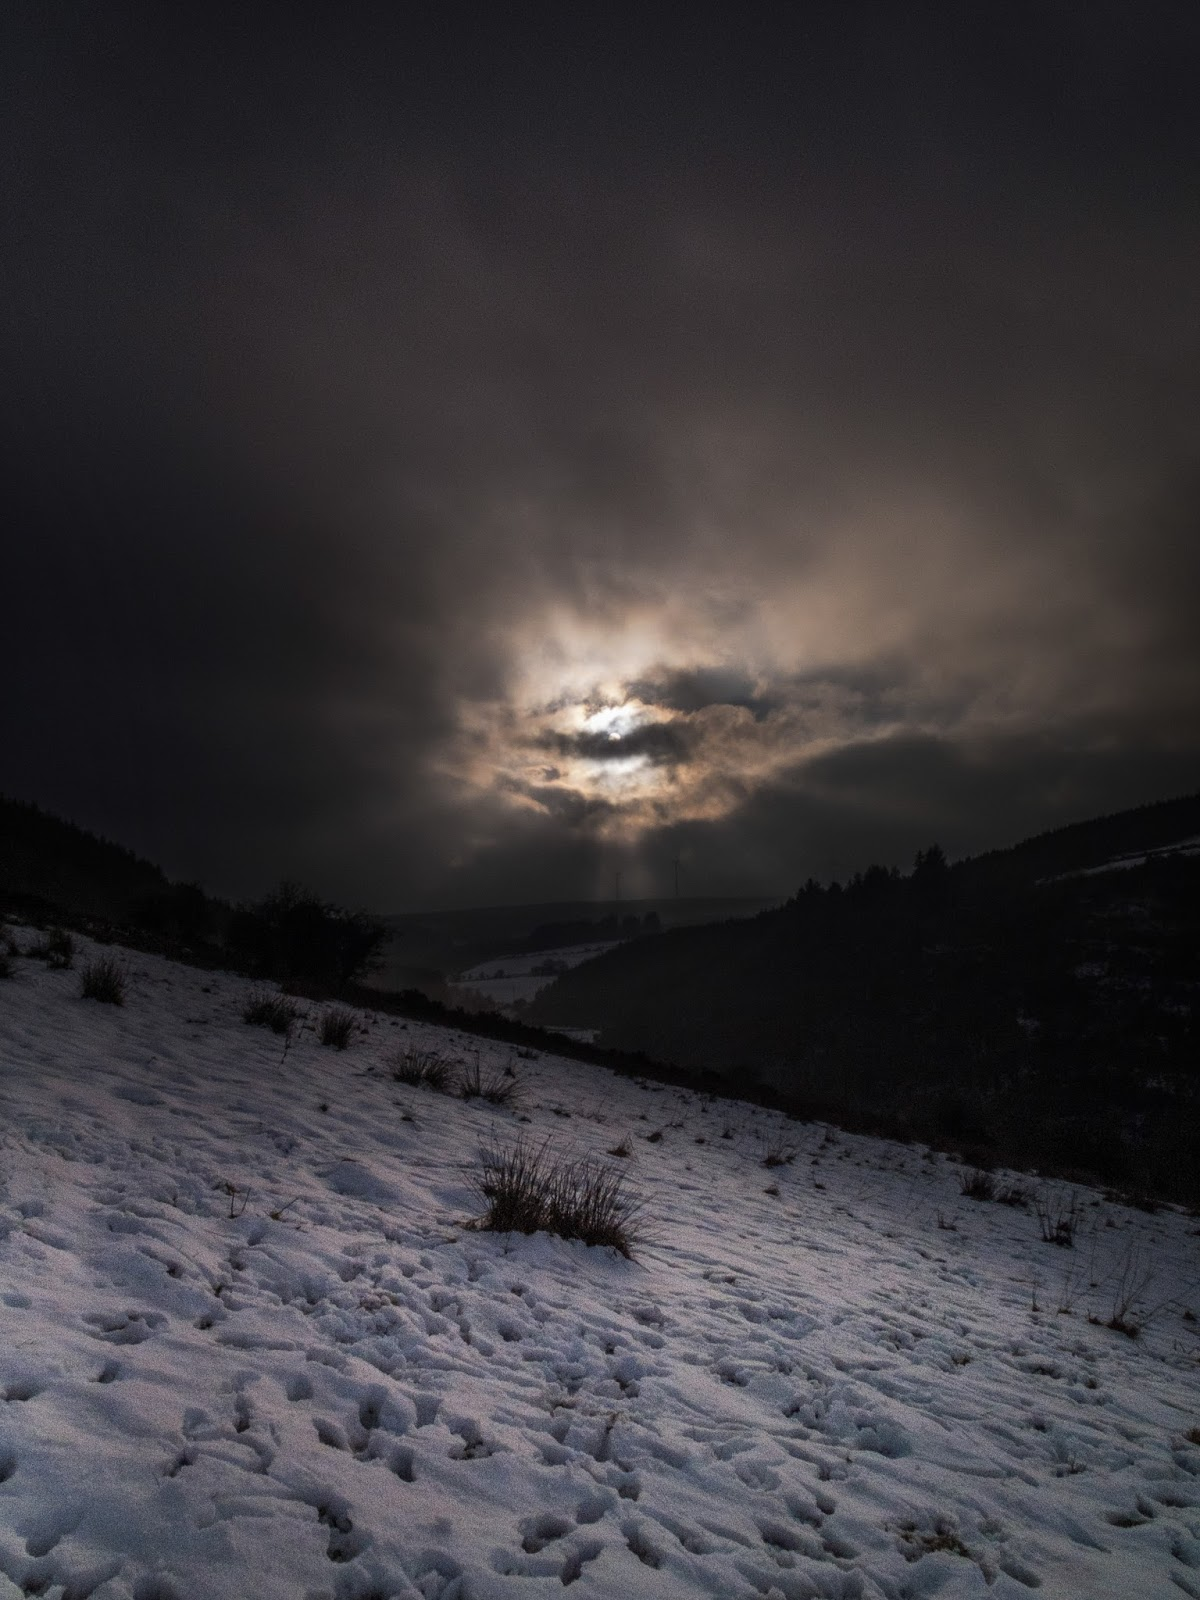 Snow covered mountain side with sun glowing behind dark skies emitting sun rays.